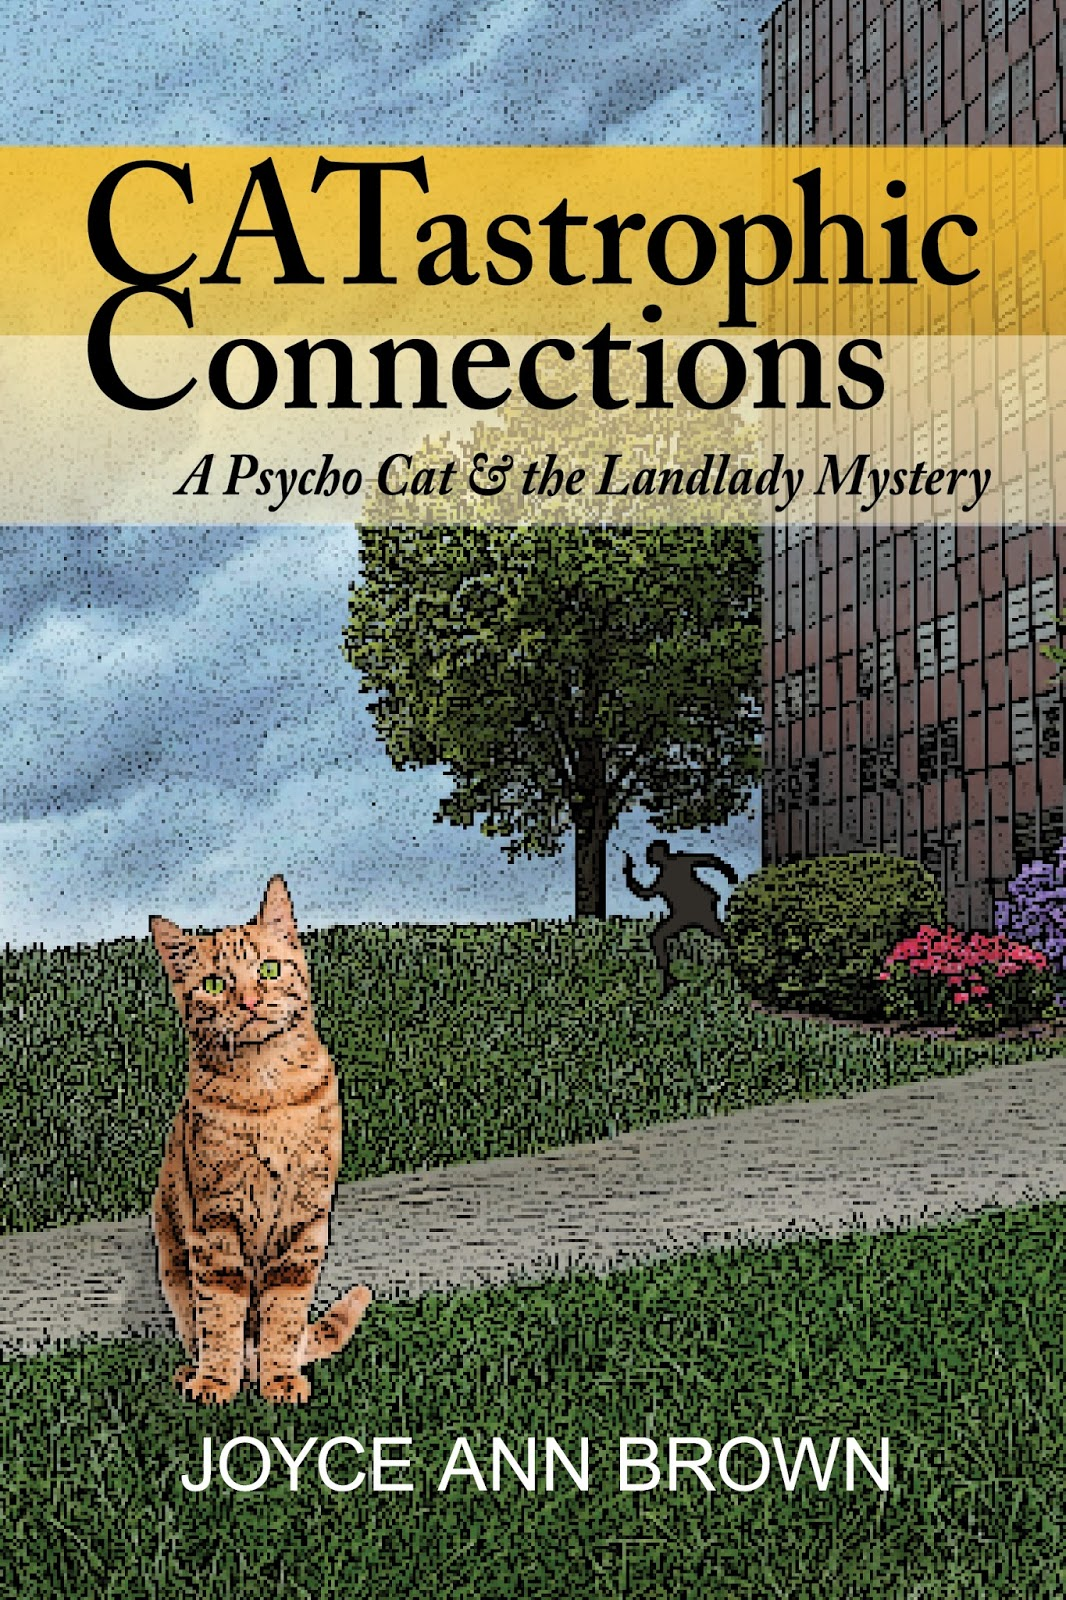 writing mysteries 10 rules for writing mystery fiction september 10, 2018 most people love a good mystery, but it can be a challenge to write an effective one unless you know some of the key rules [.